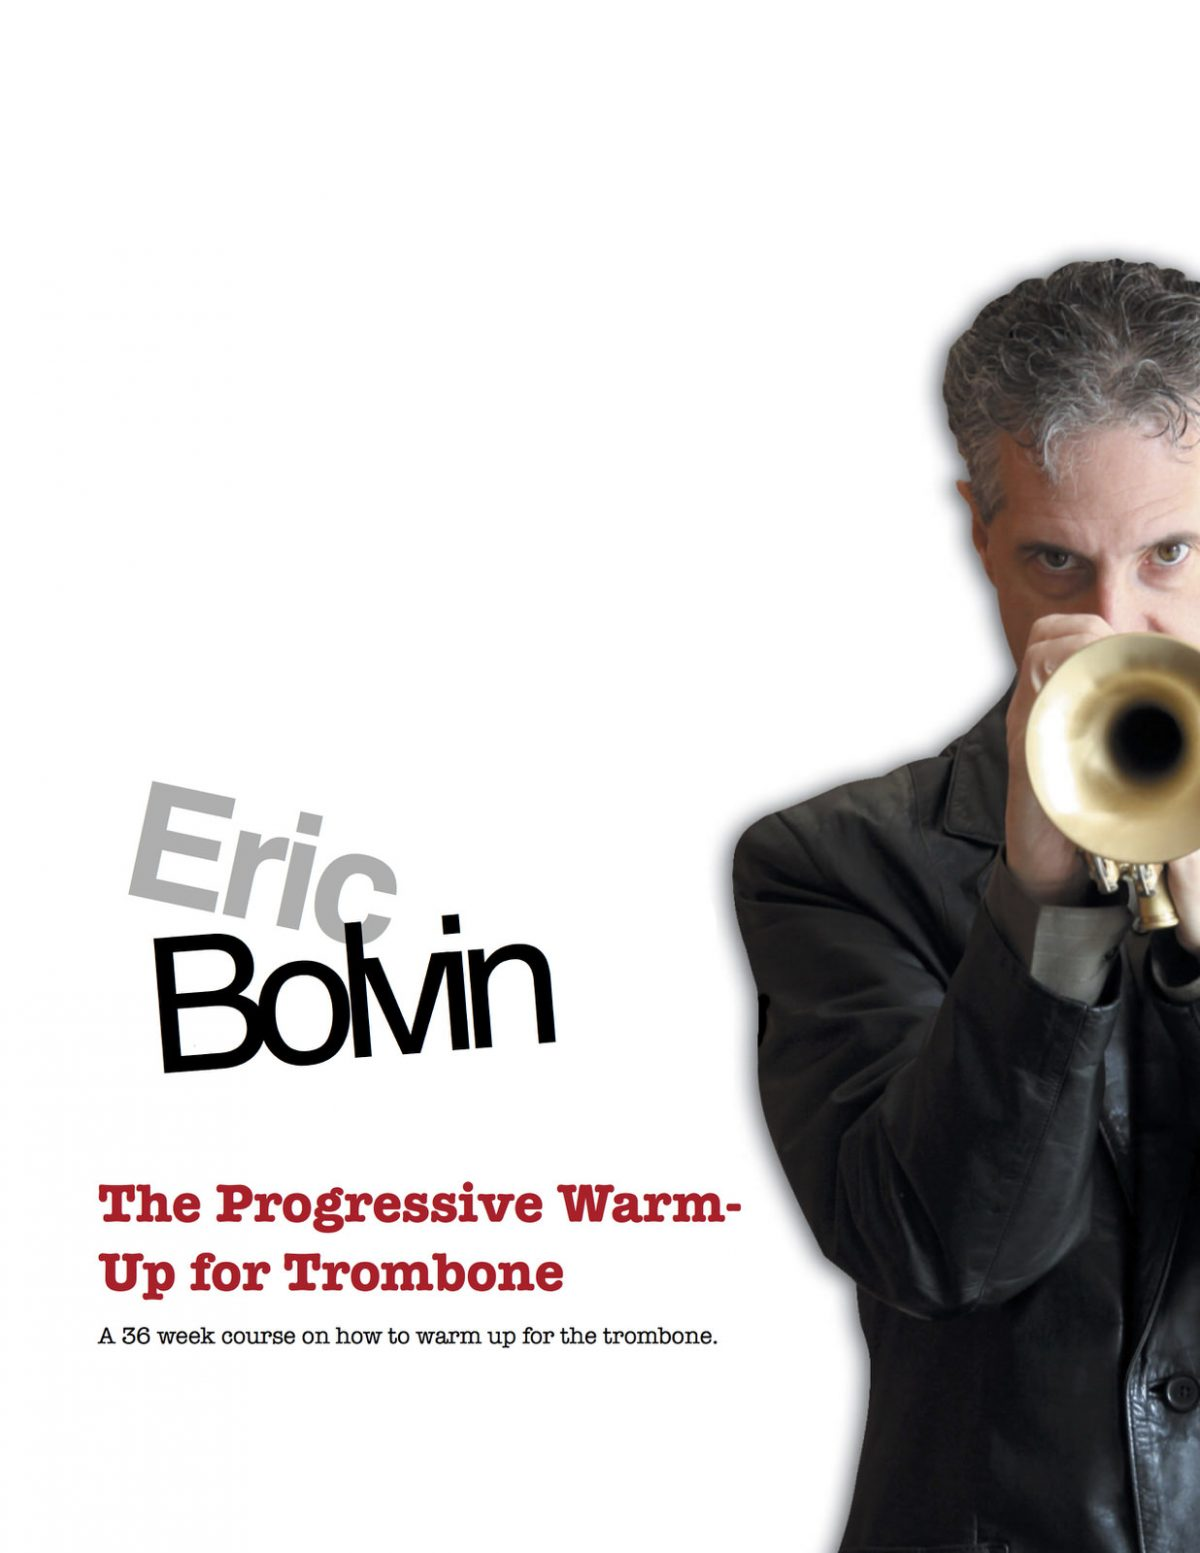 Bolvin, The Progresive Warm Up trombone